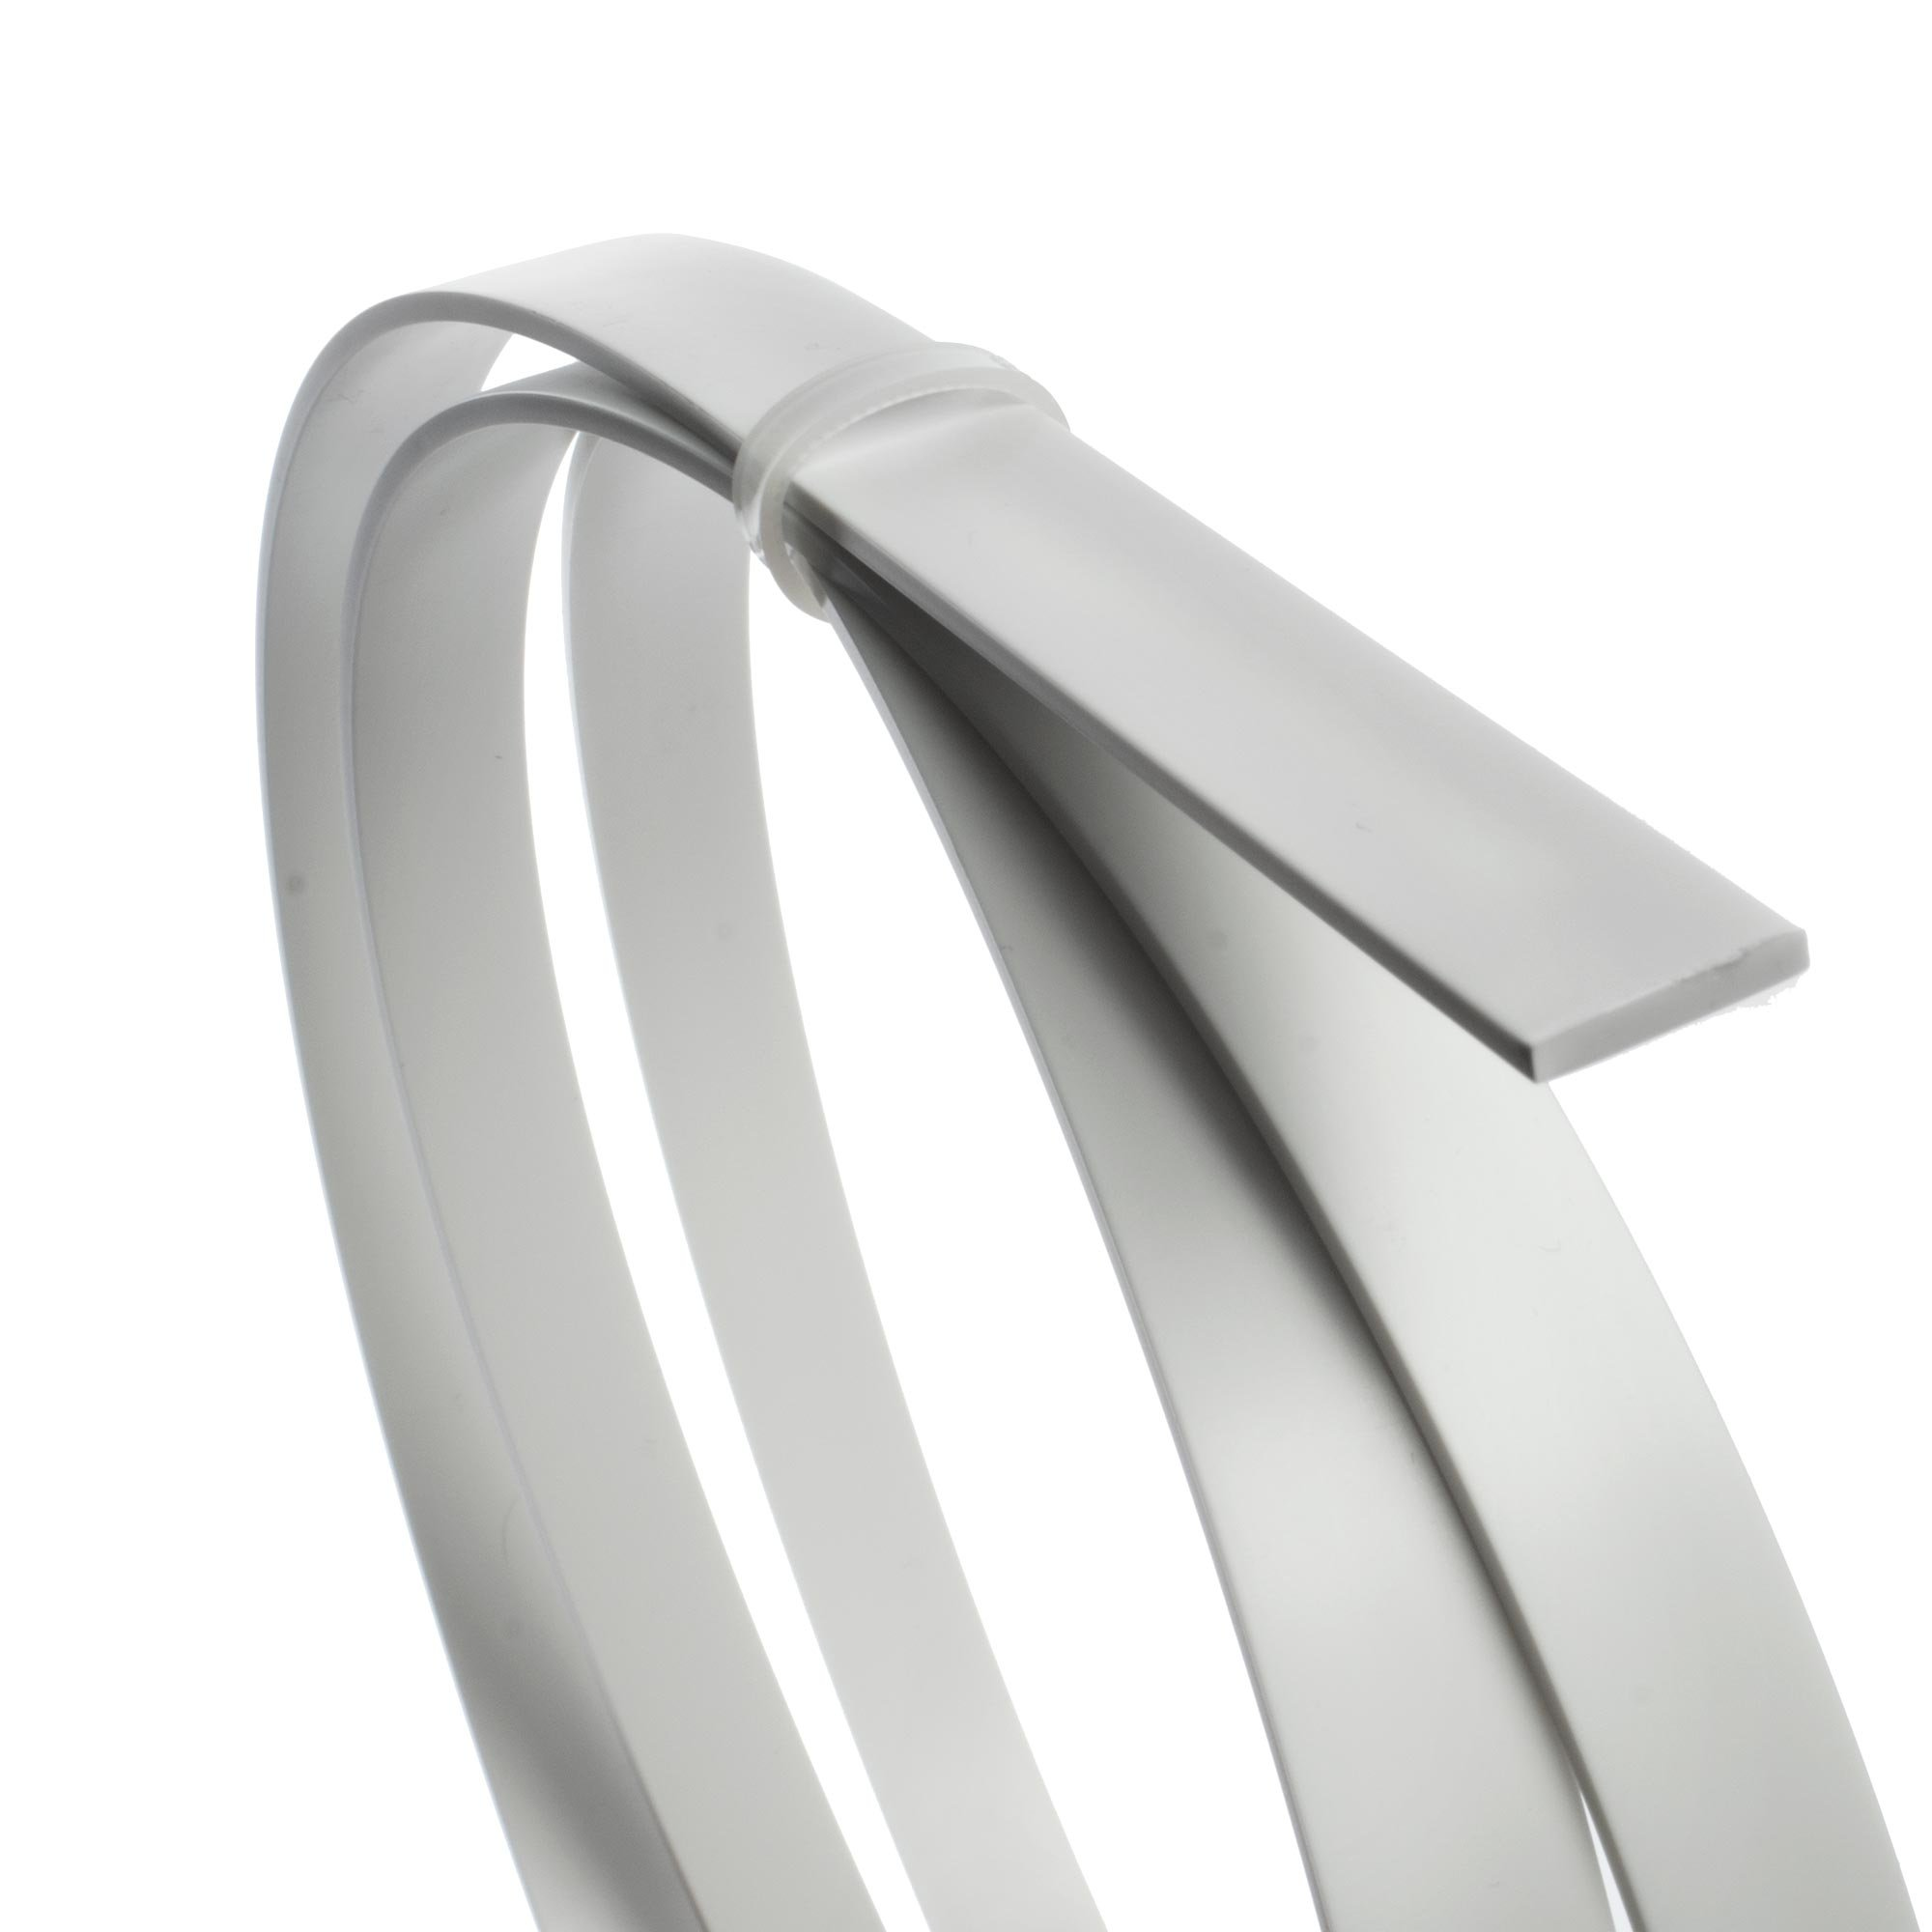 StewMac White ABS Plastic Binding, 65 Inches (1651mm) long by .090'' x .565'' (2.29mm x 14.35mm) - 4 Pack by StewMac (Image #2)